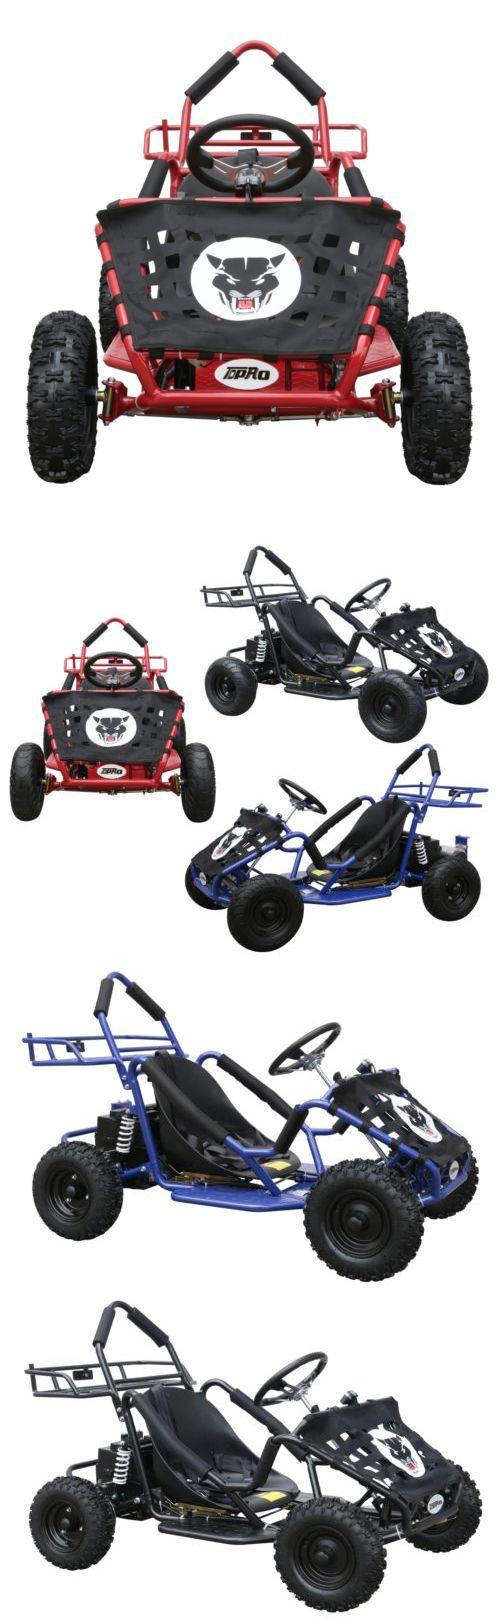 Complete Go-Karts and Frames 64656: 1000W Electric Kids Ride-On Go-Cart Go Karts Mini Bike 3 Speeds Outdoor Toy Gift -> BUY IT NOW ONLY: $749.99 on eBay!